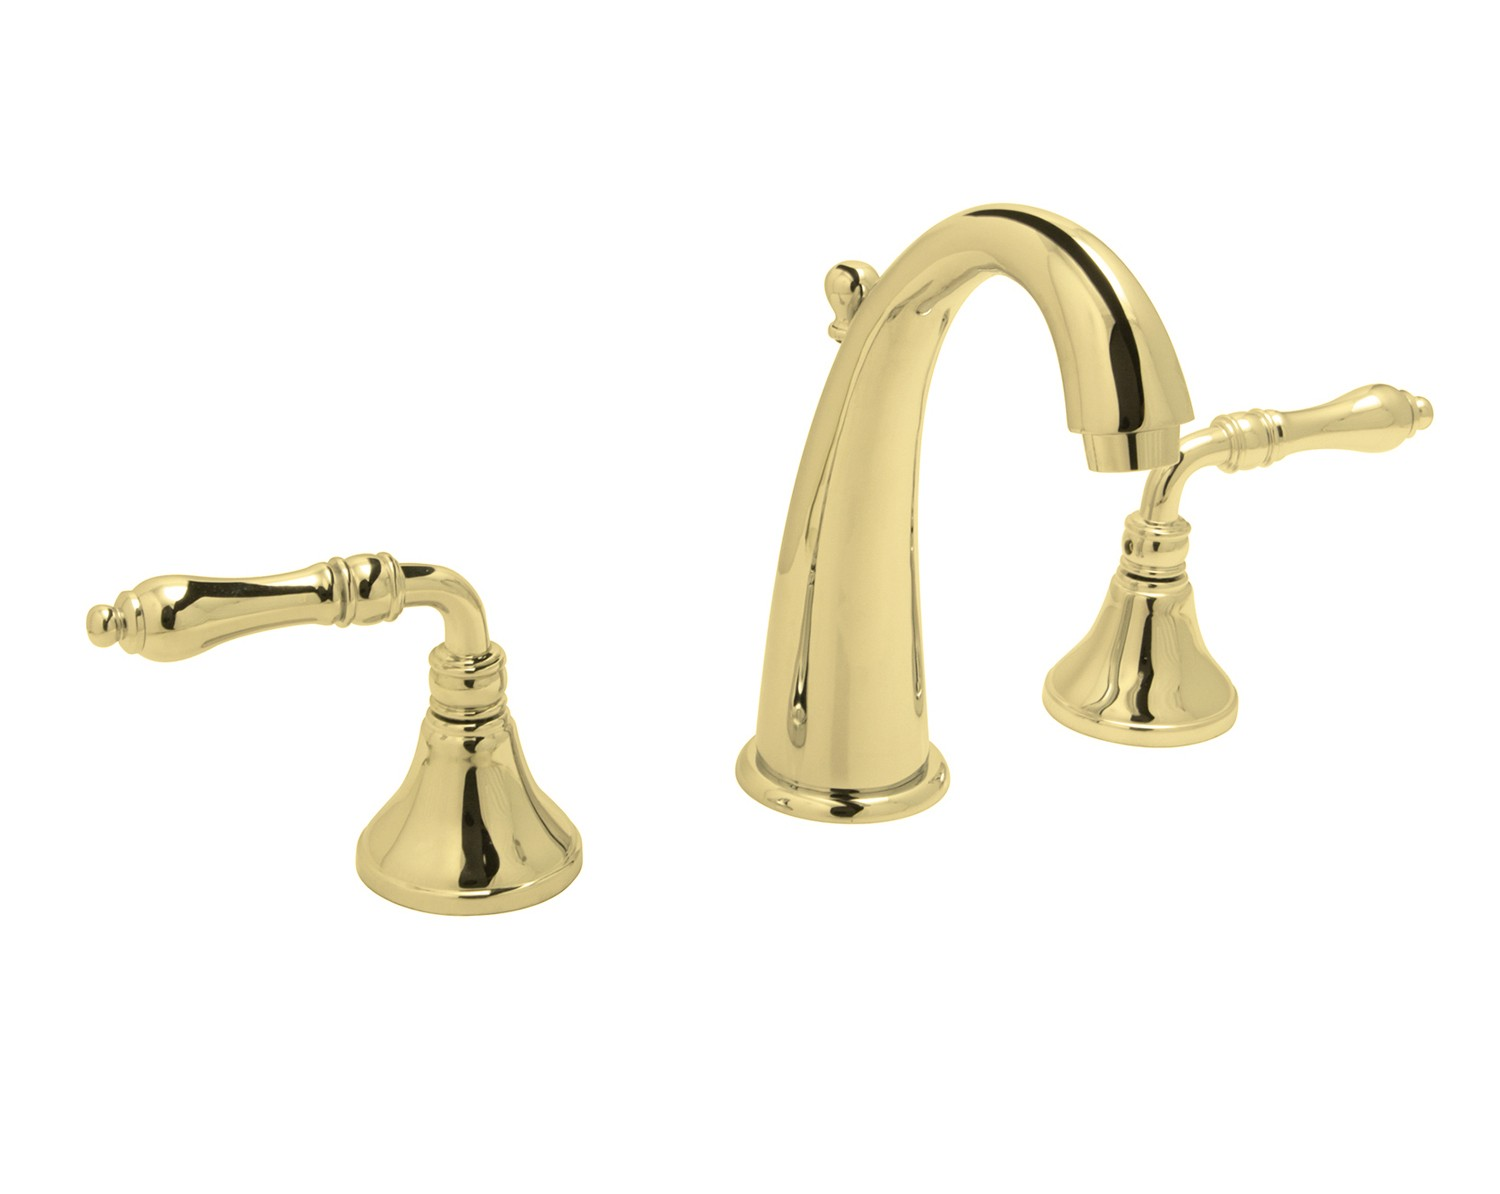 Jewel Widespread Faucet W4560213-11